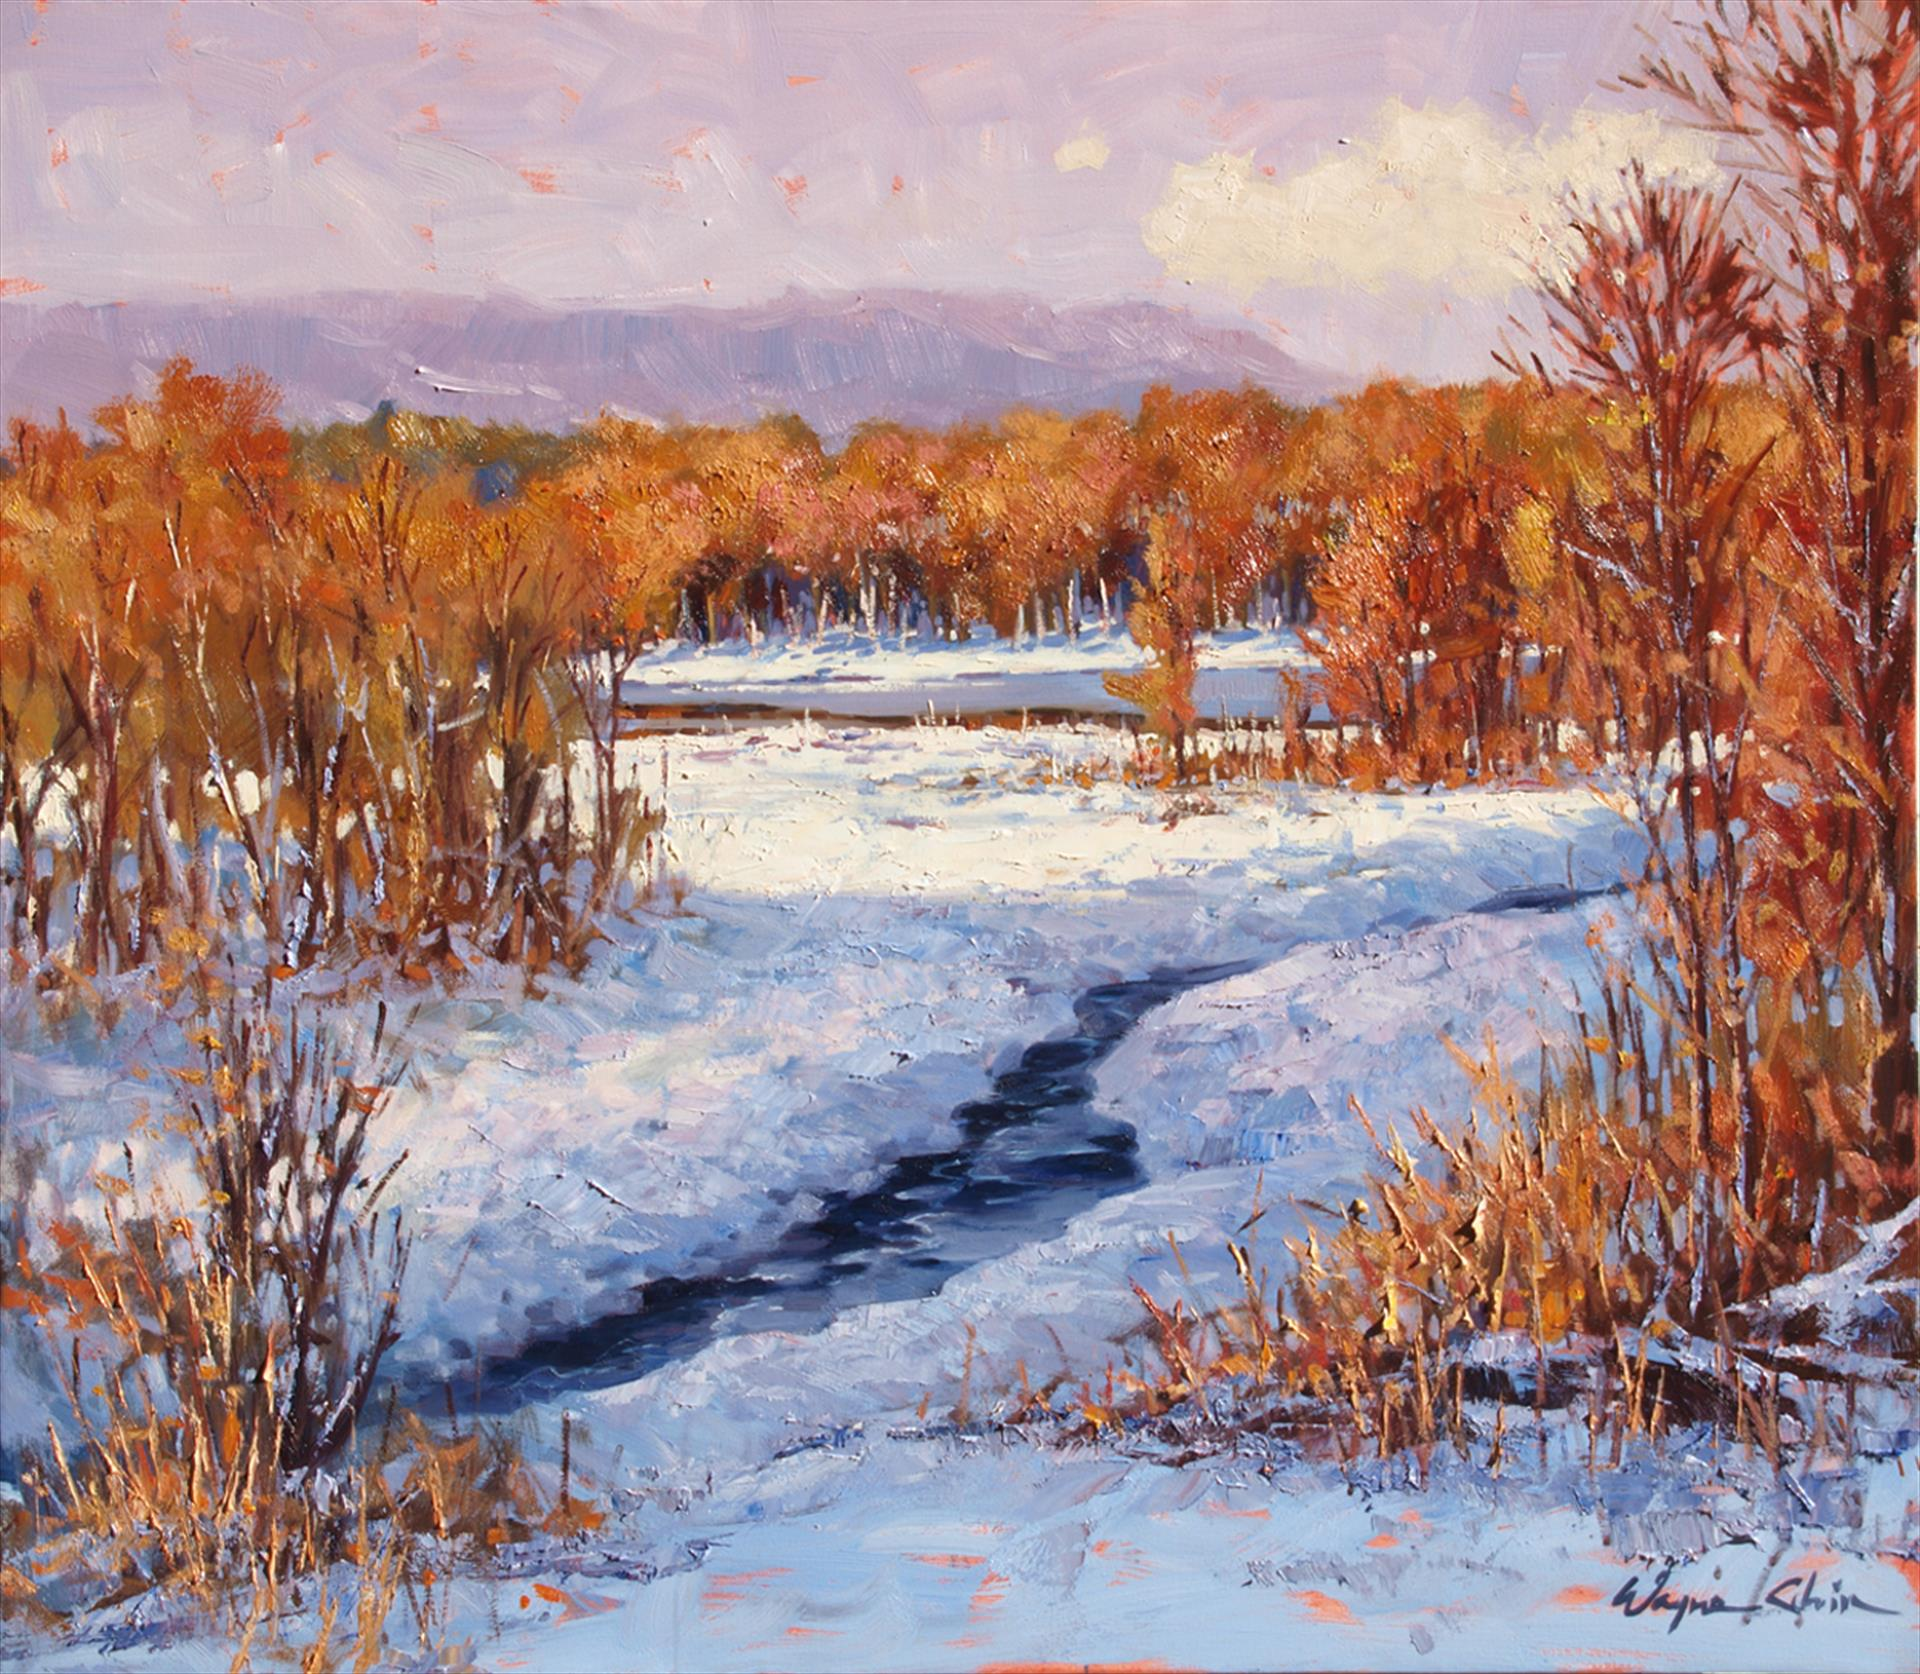 Wayne Chin, Winter Heat